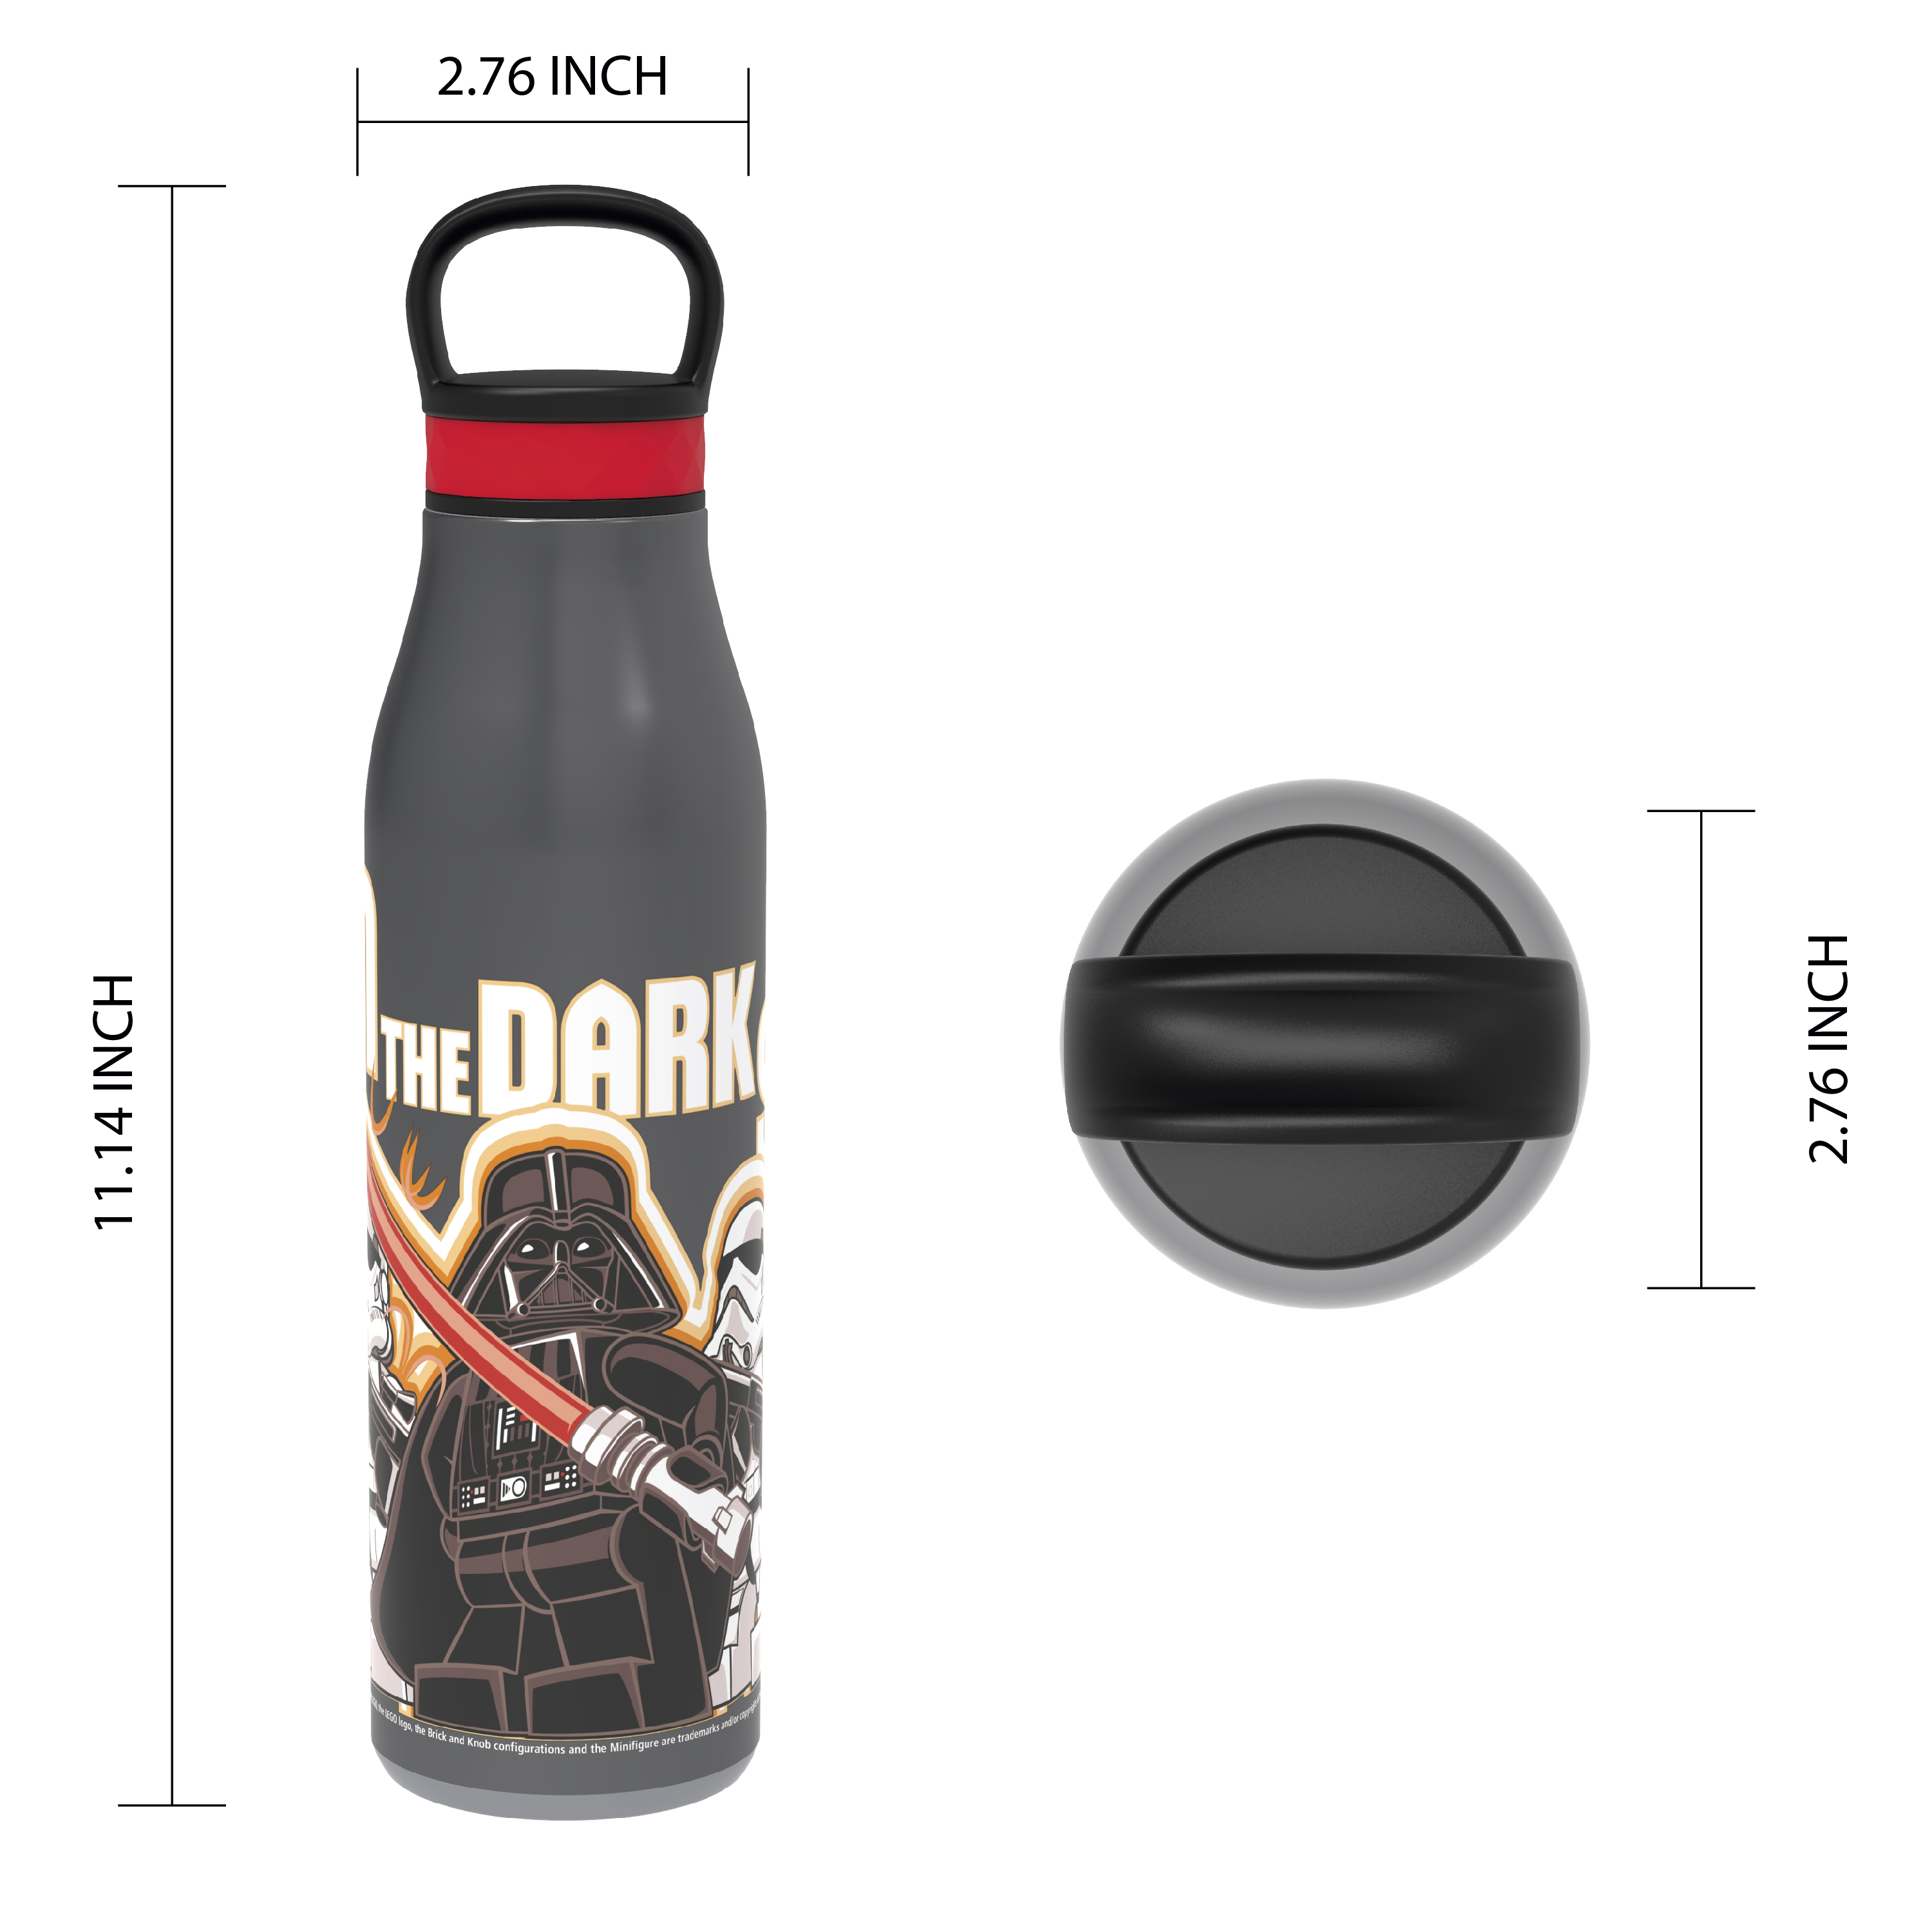 Lego Star Wars 20 ounce Stainless Steel Vacuum Insulated Water Bottle, Darth Vader and Stormtroopers slideshow image 6